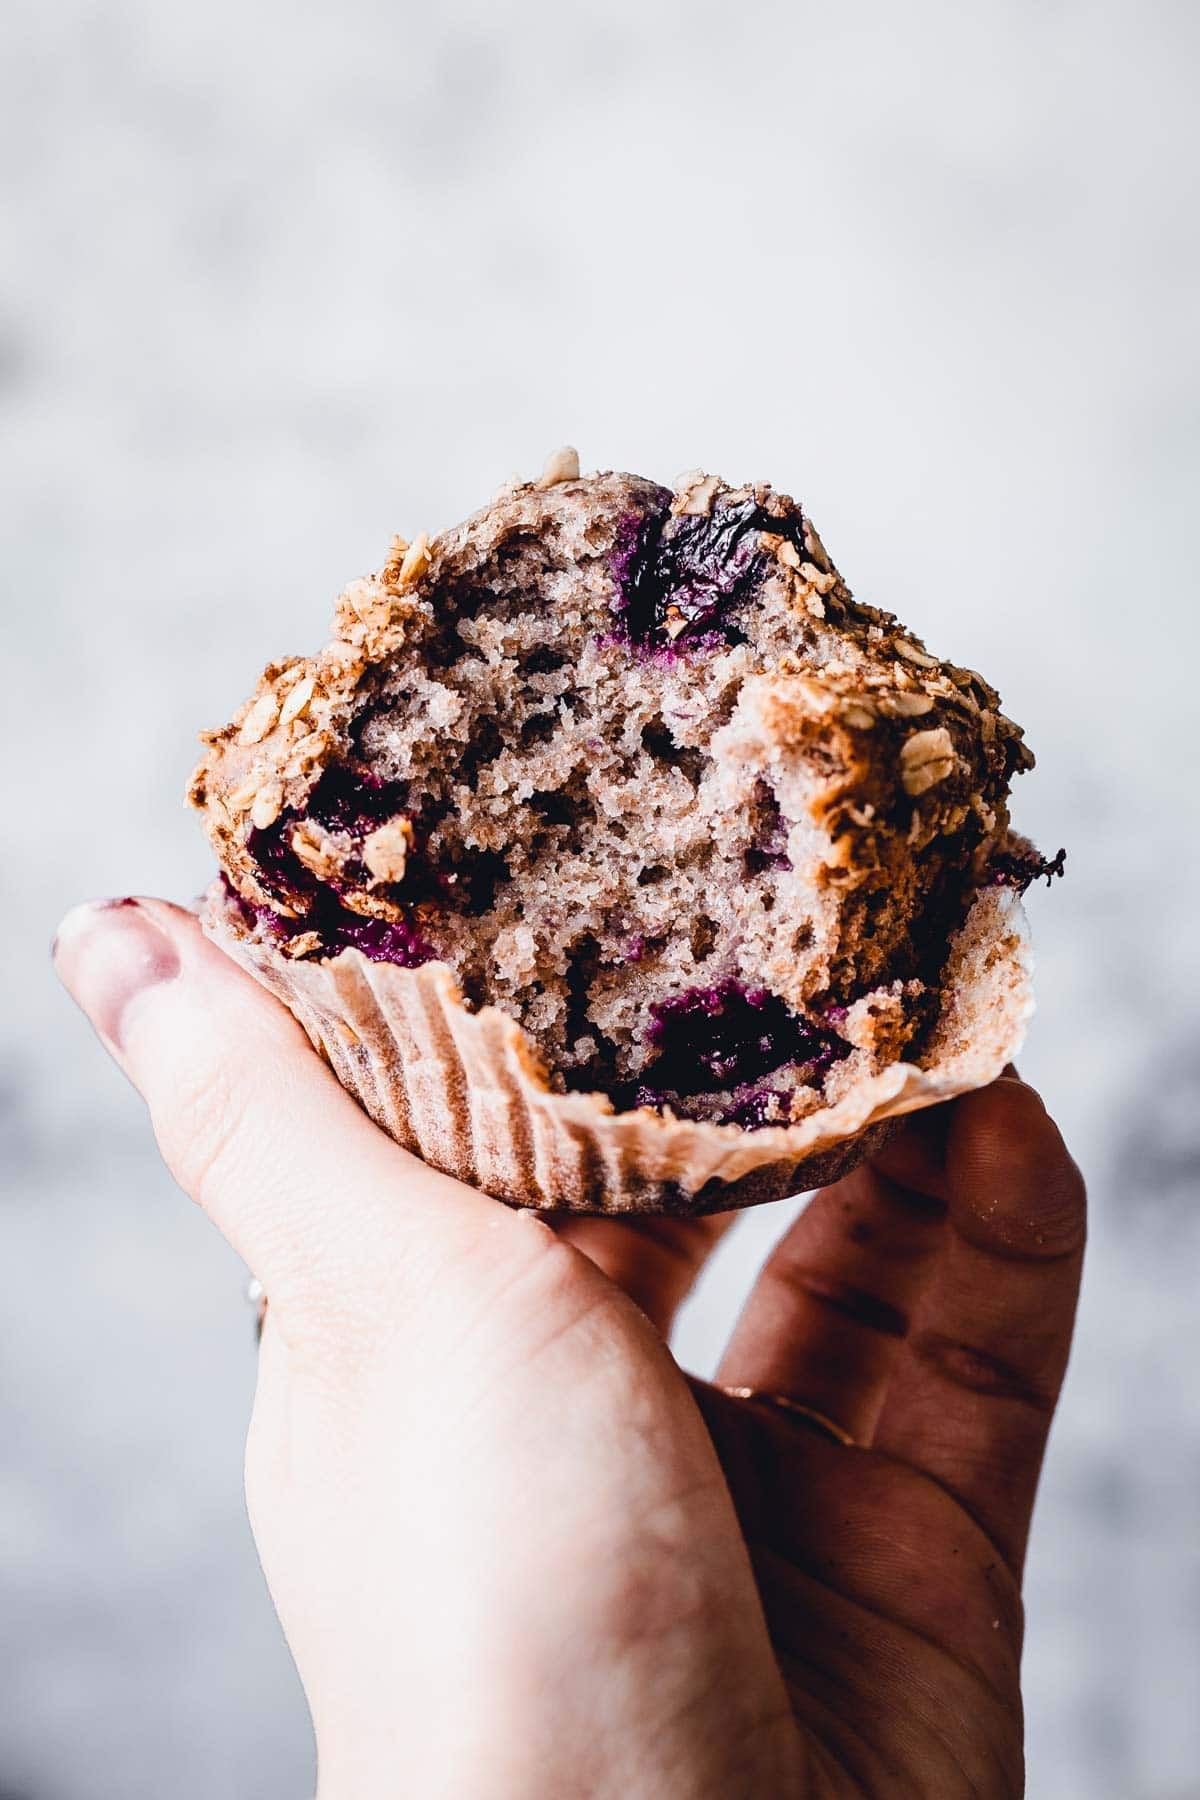 A hand holding up one blueberry muffin with a bite taken out of it.